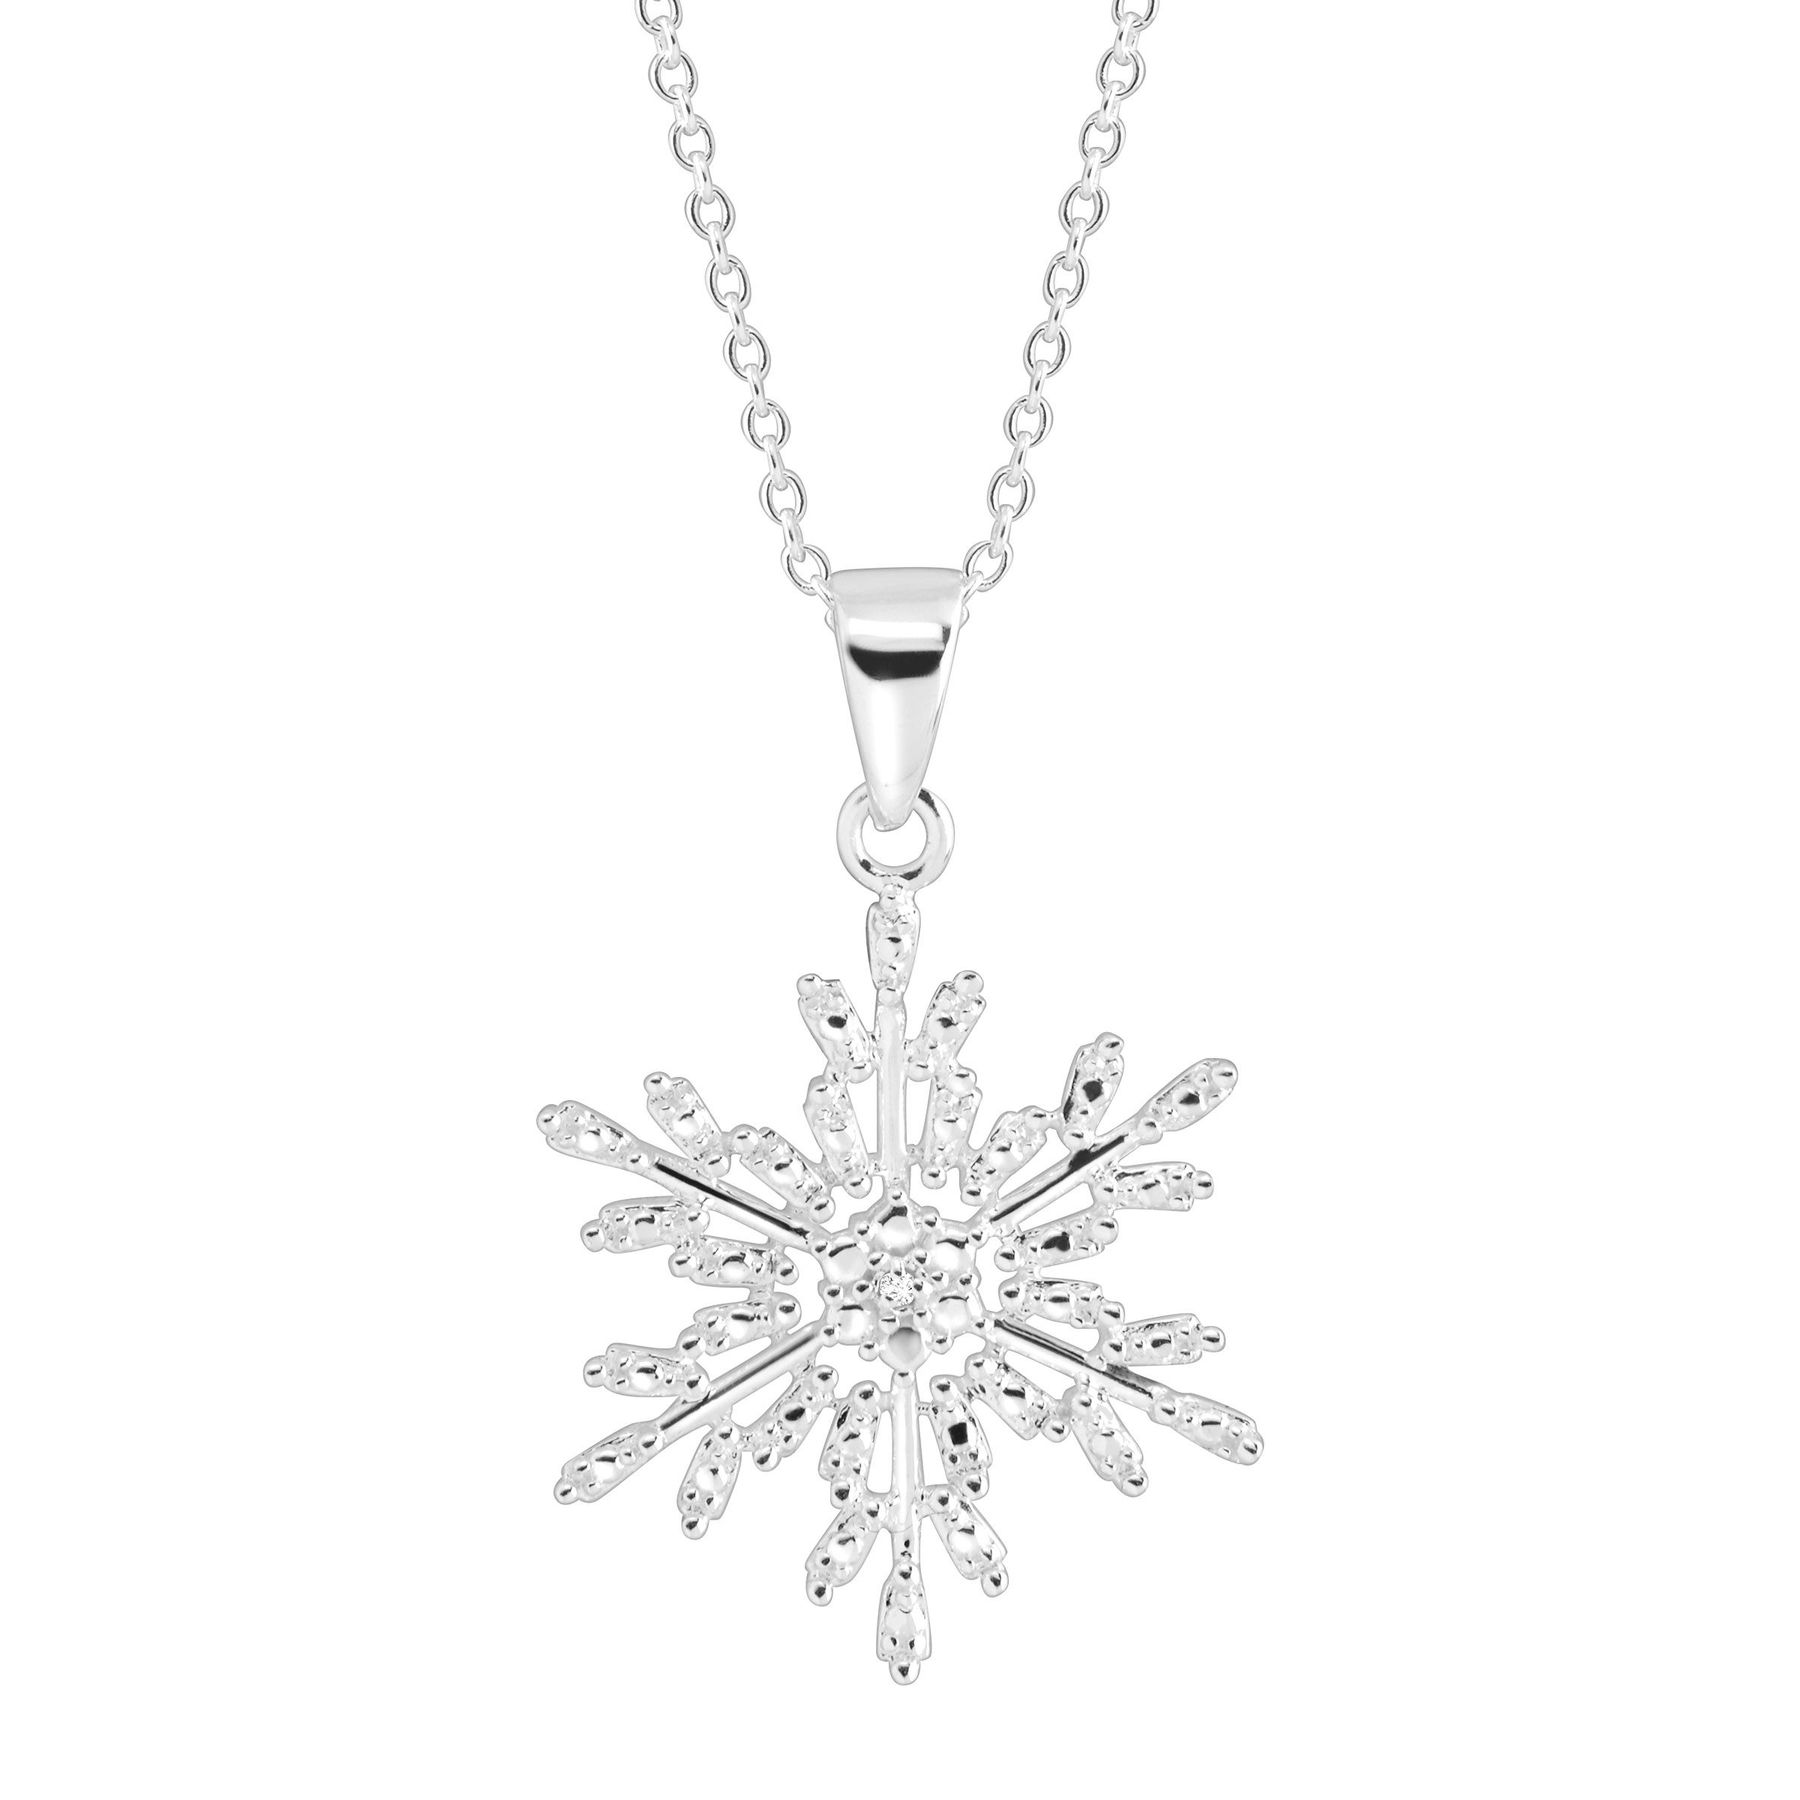 rose gold pendant christmas jewelry wholesale necklace winter snowflake finish product diamond sand steel in laaeek available titanium